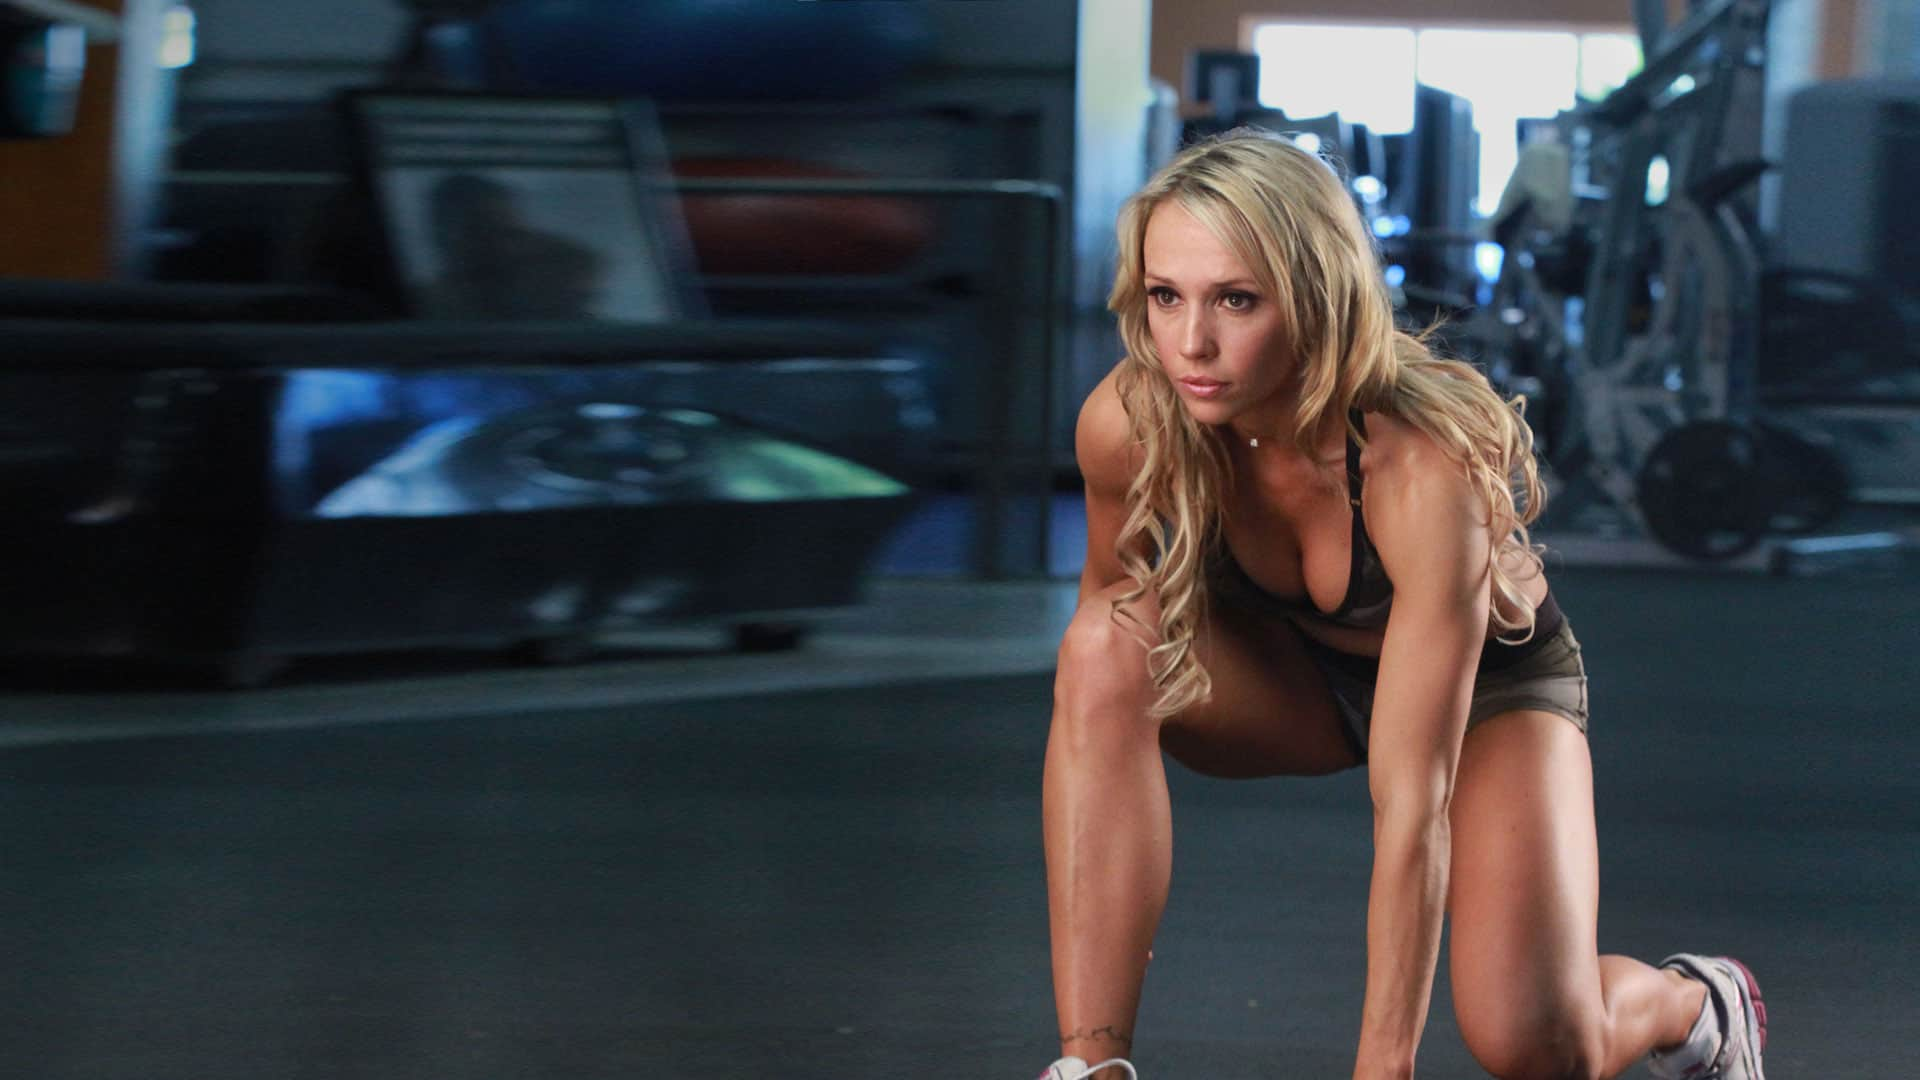 What Is The Best Type Of Cardio To Burn Fat Faster Just For Women Fitness?